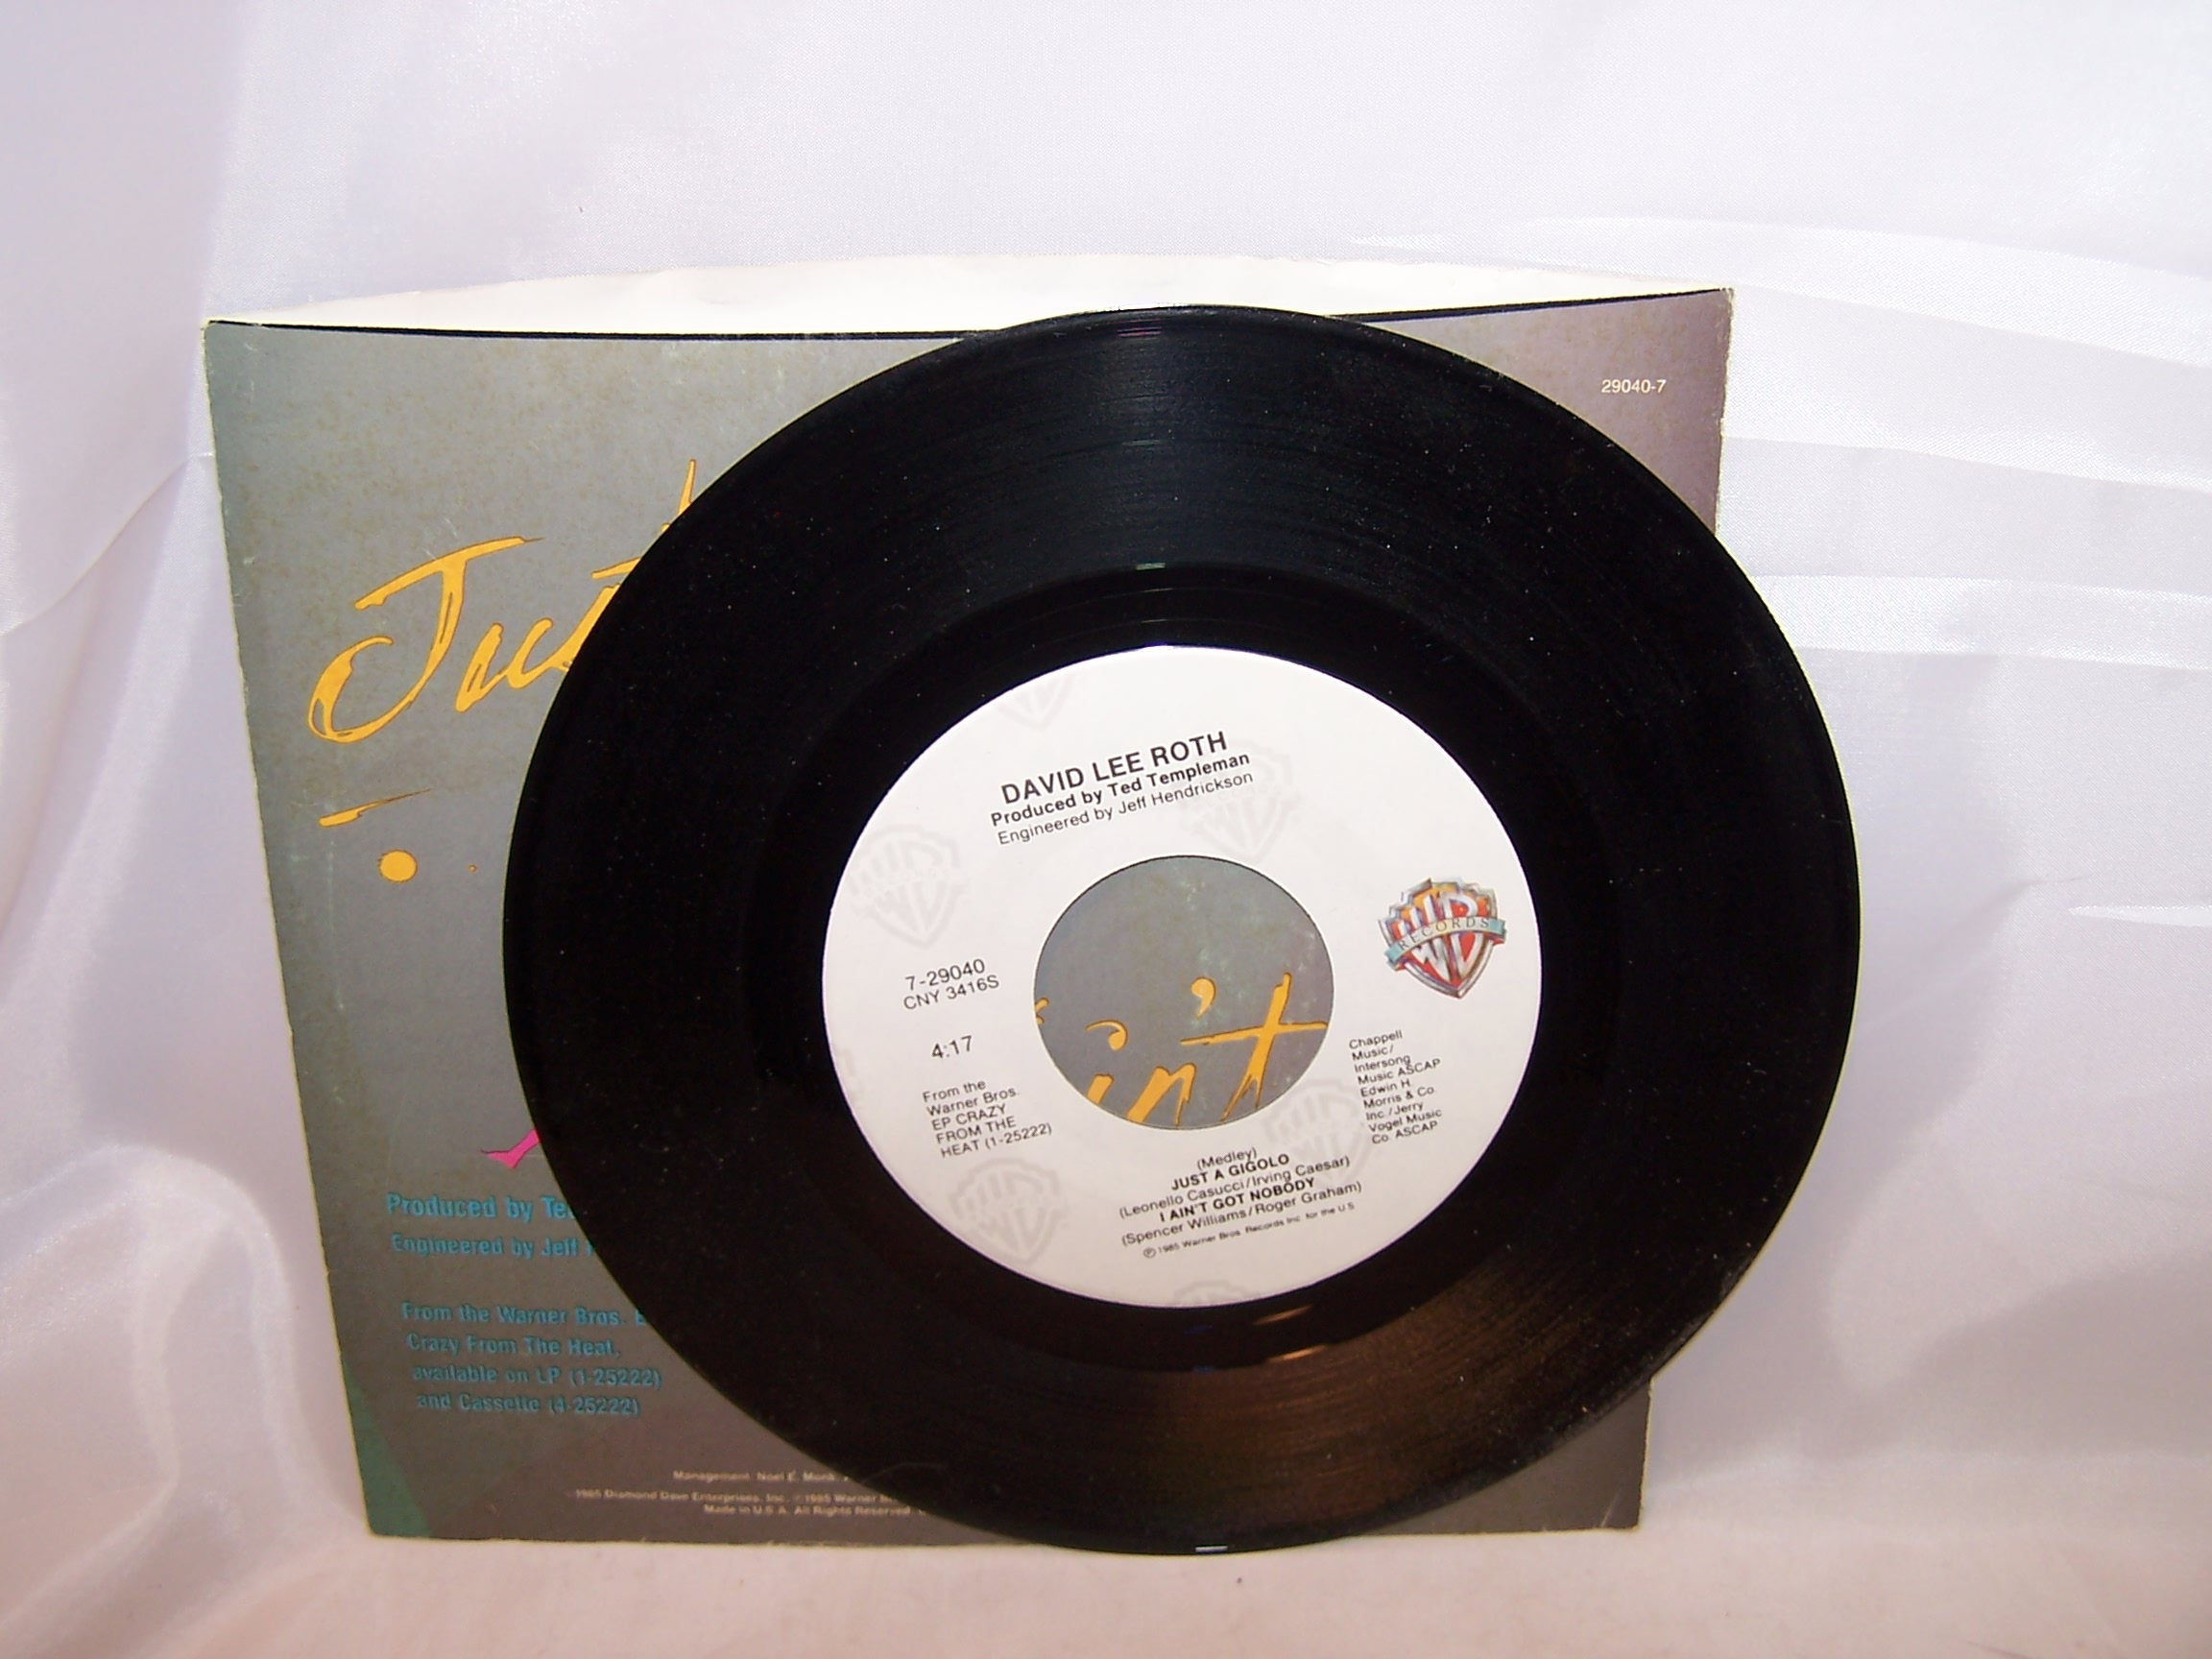 Image 1 of David Lee Roth, Just a Gigolo, 45 RPM Record, 1985